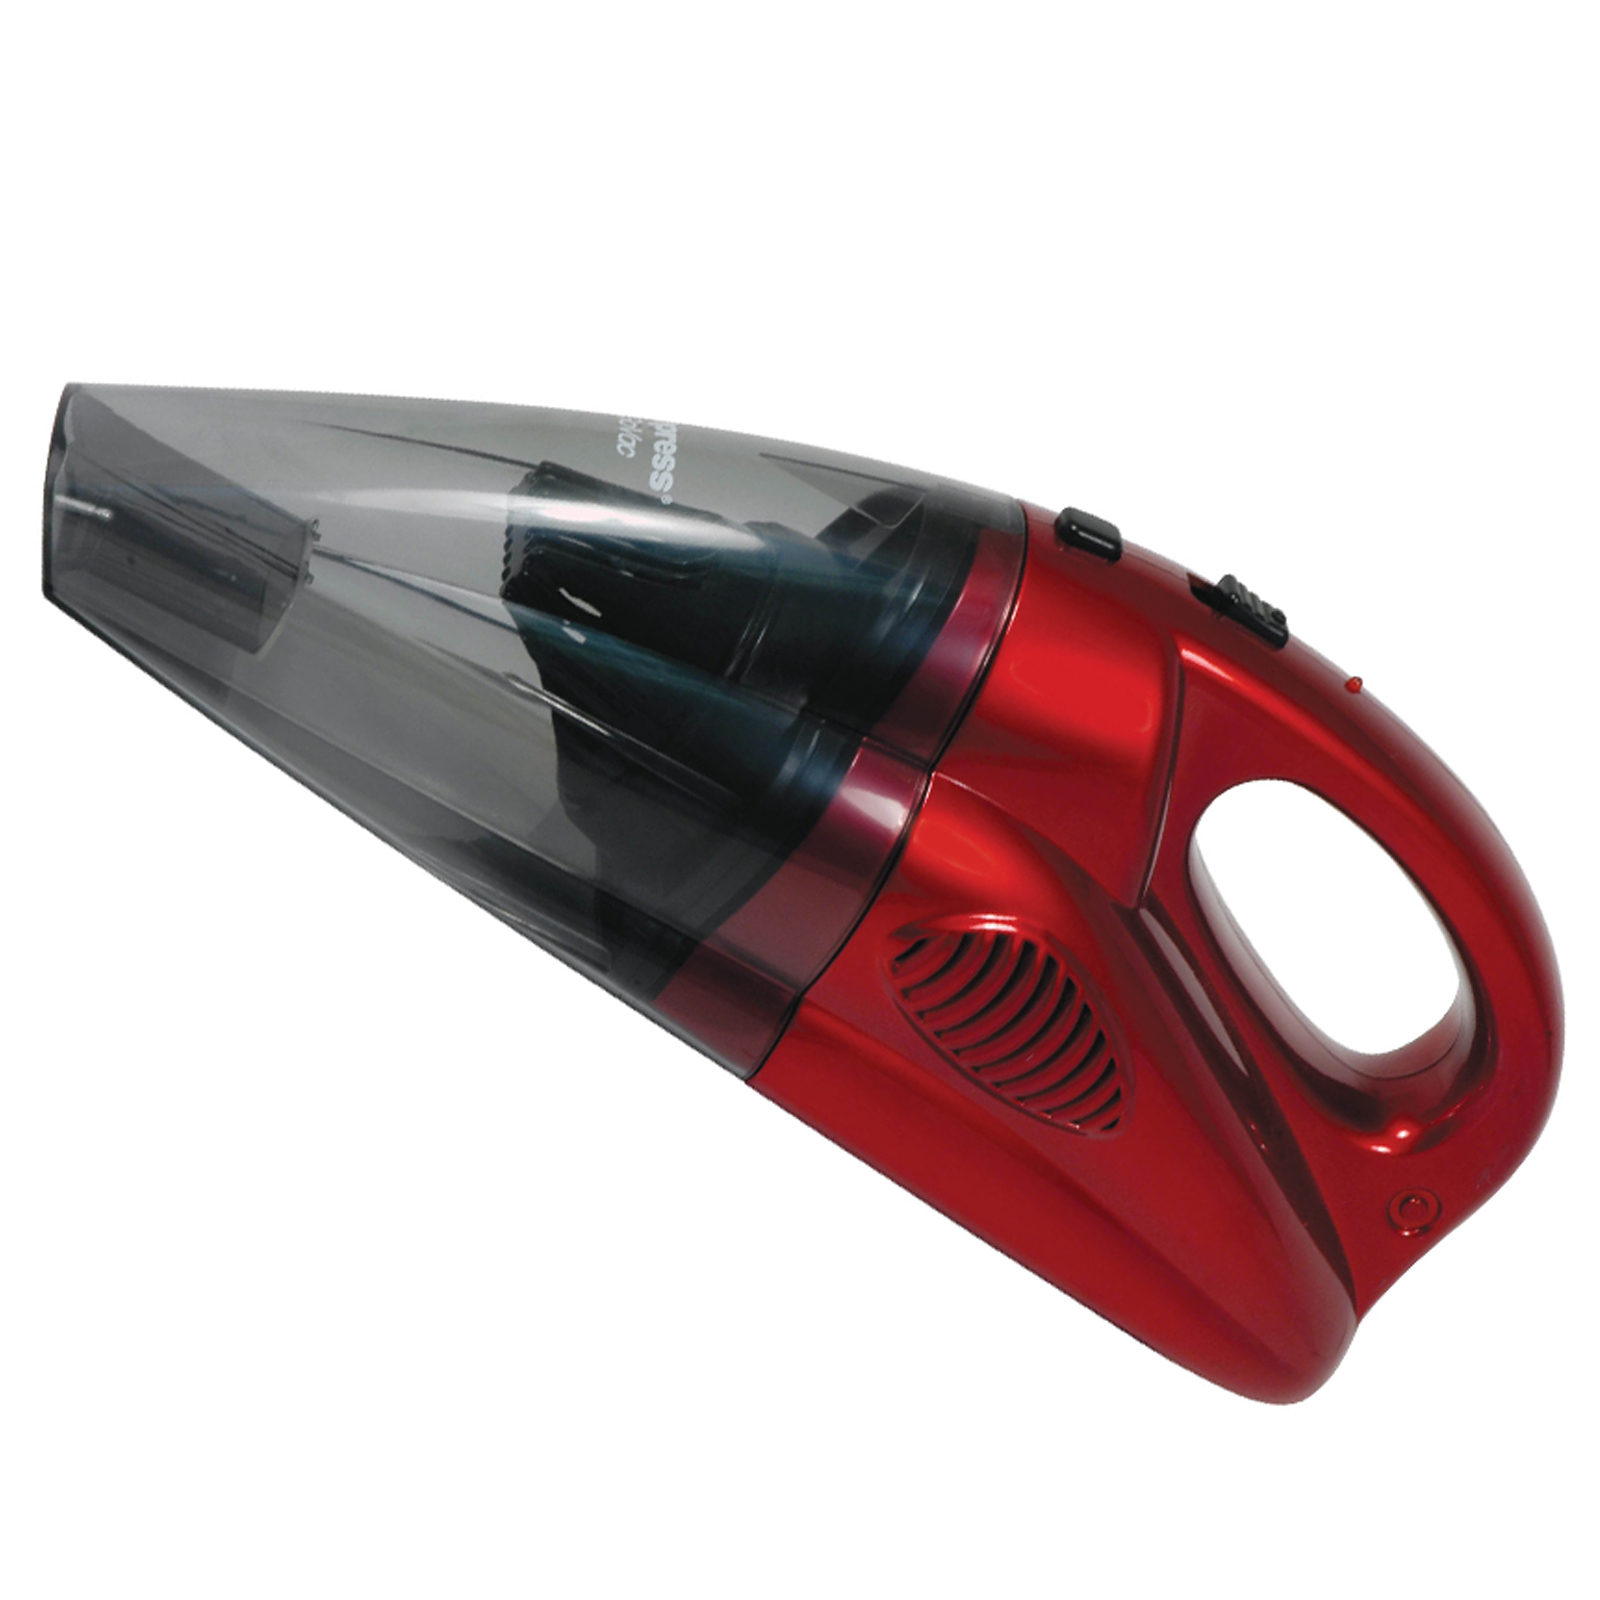 Impress GoVac Redchargeable Deluxe Handheld Vacuum with Base- Red